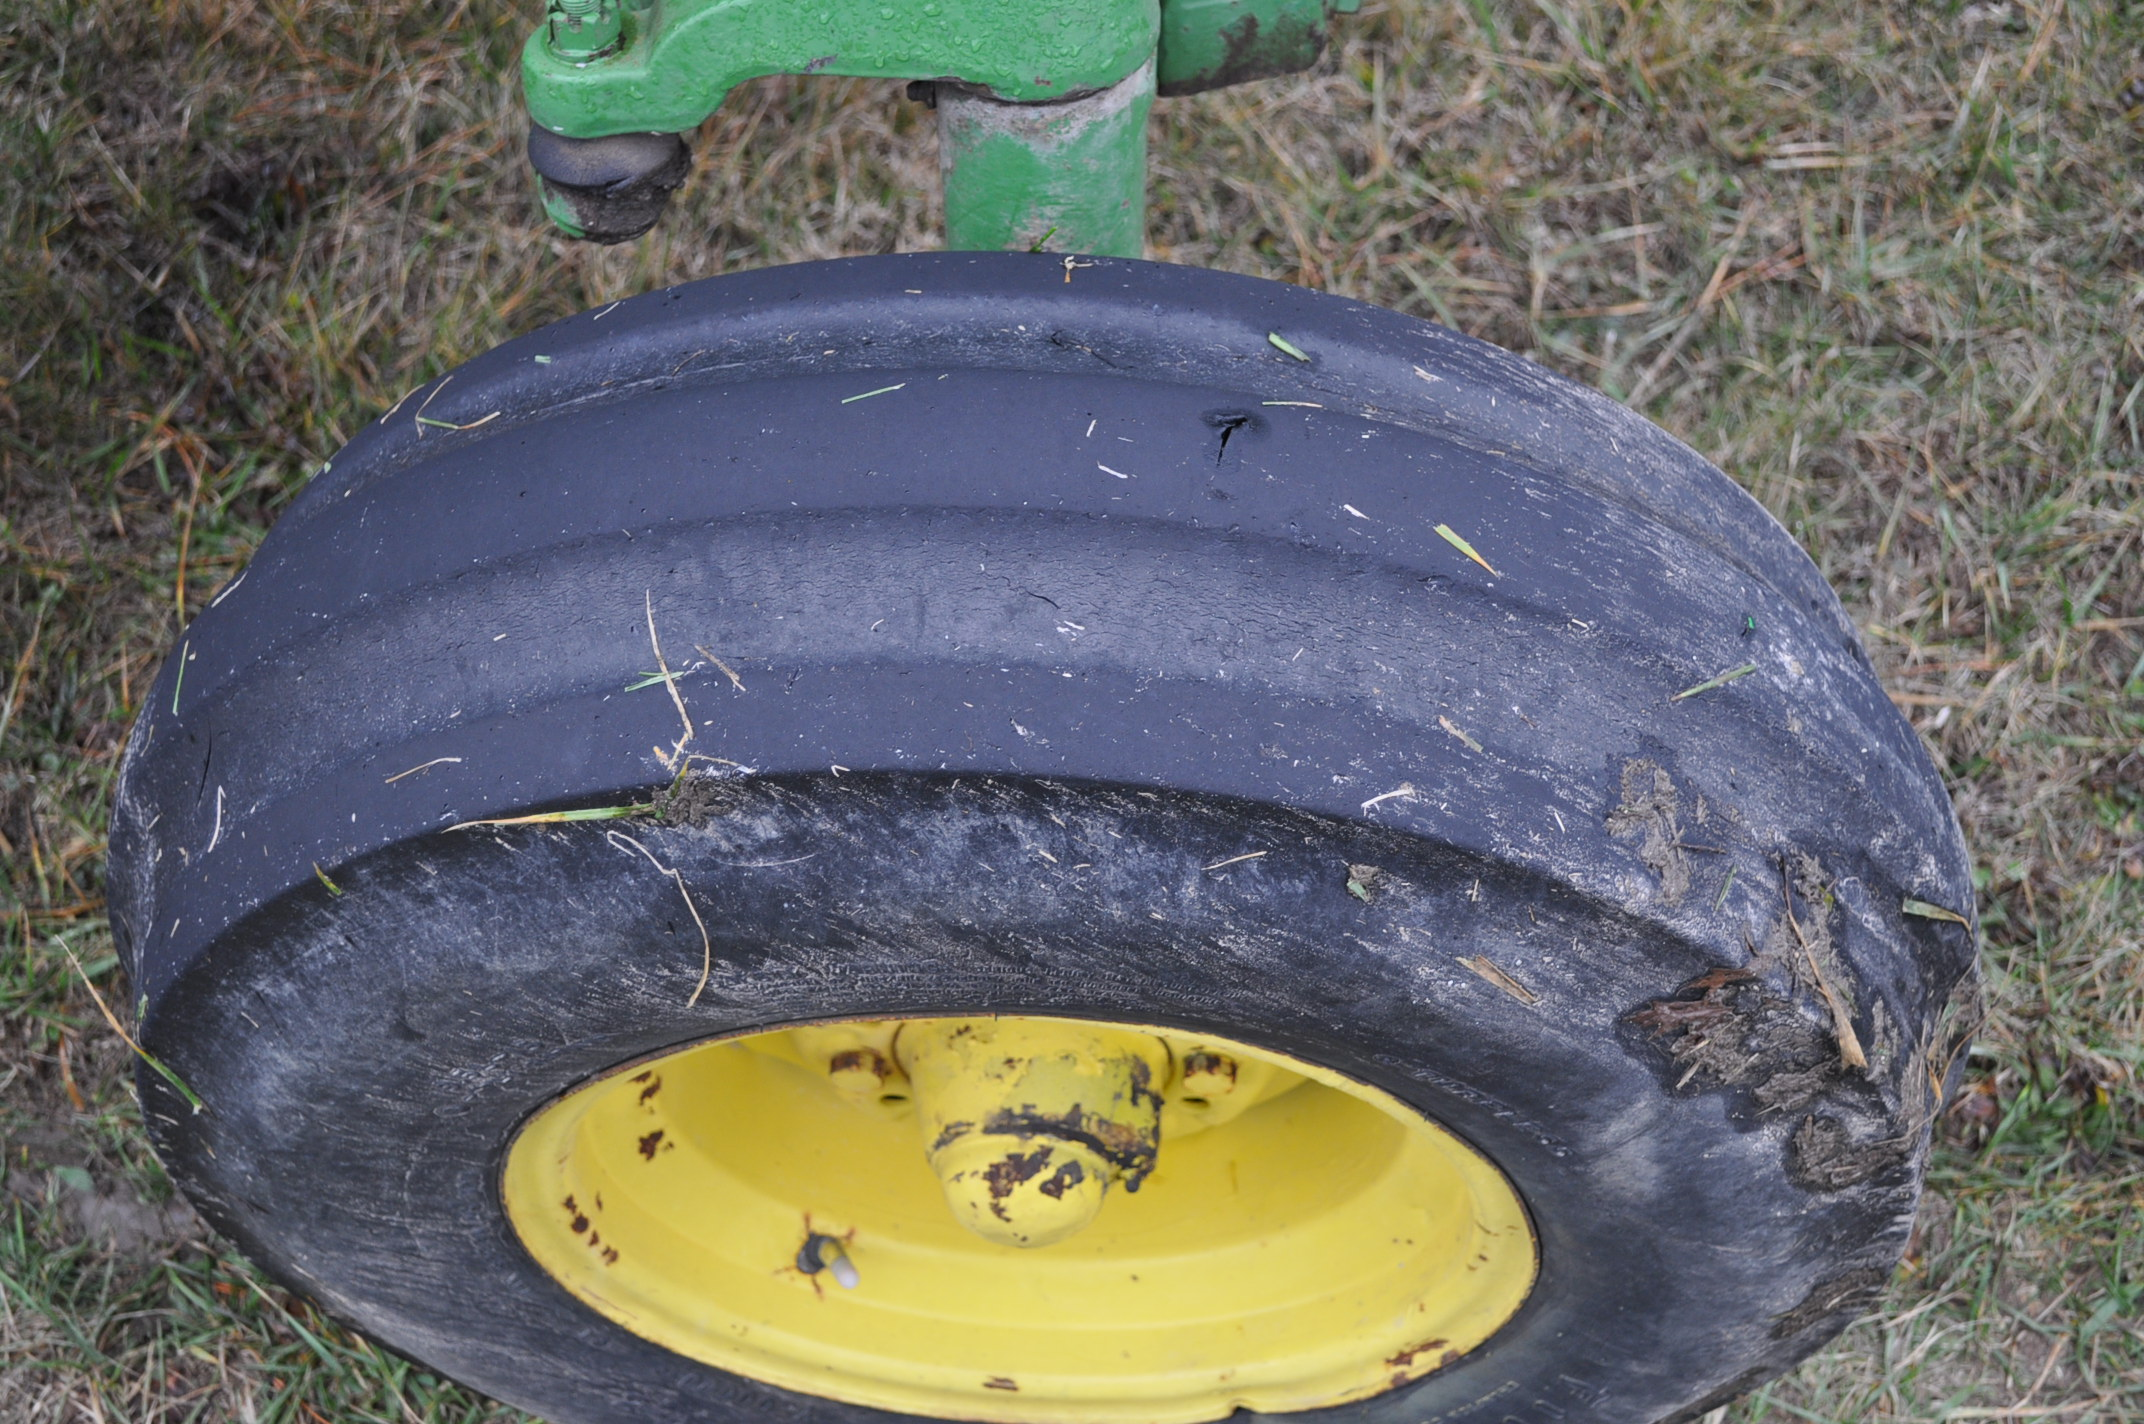 John Deere 4030 tractor, diesel, 18.4-34 rear duals, rear wts, 9.5-15 front, 4-post canopy, Syncro, - Image 8 of 26